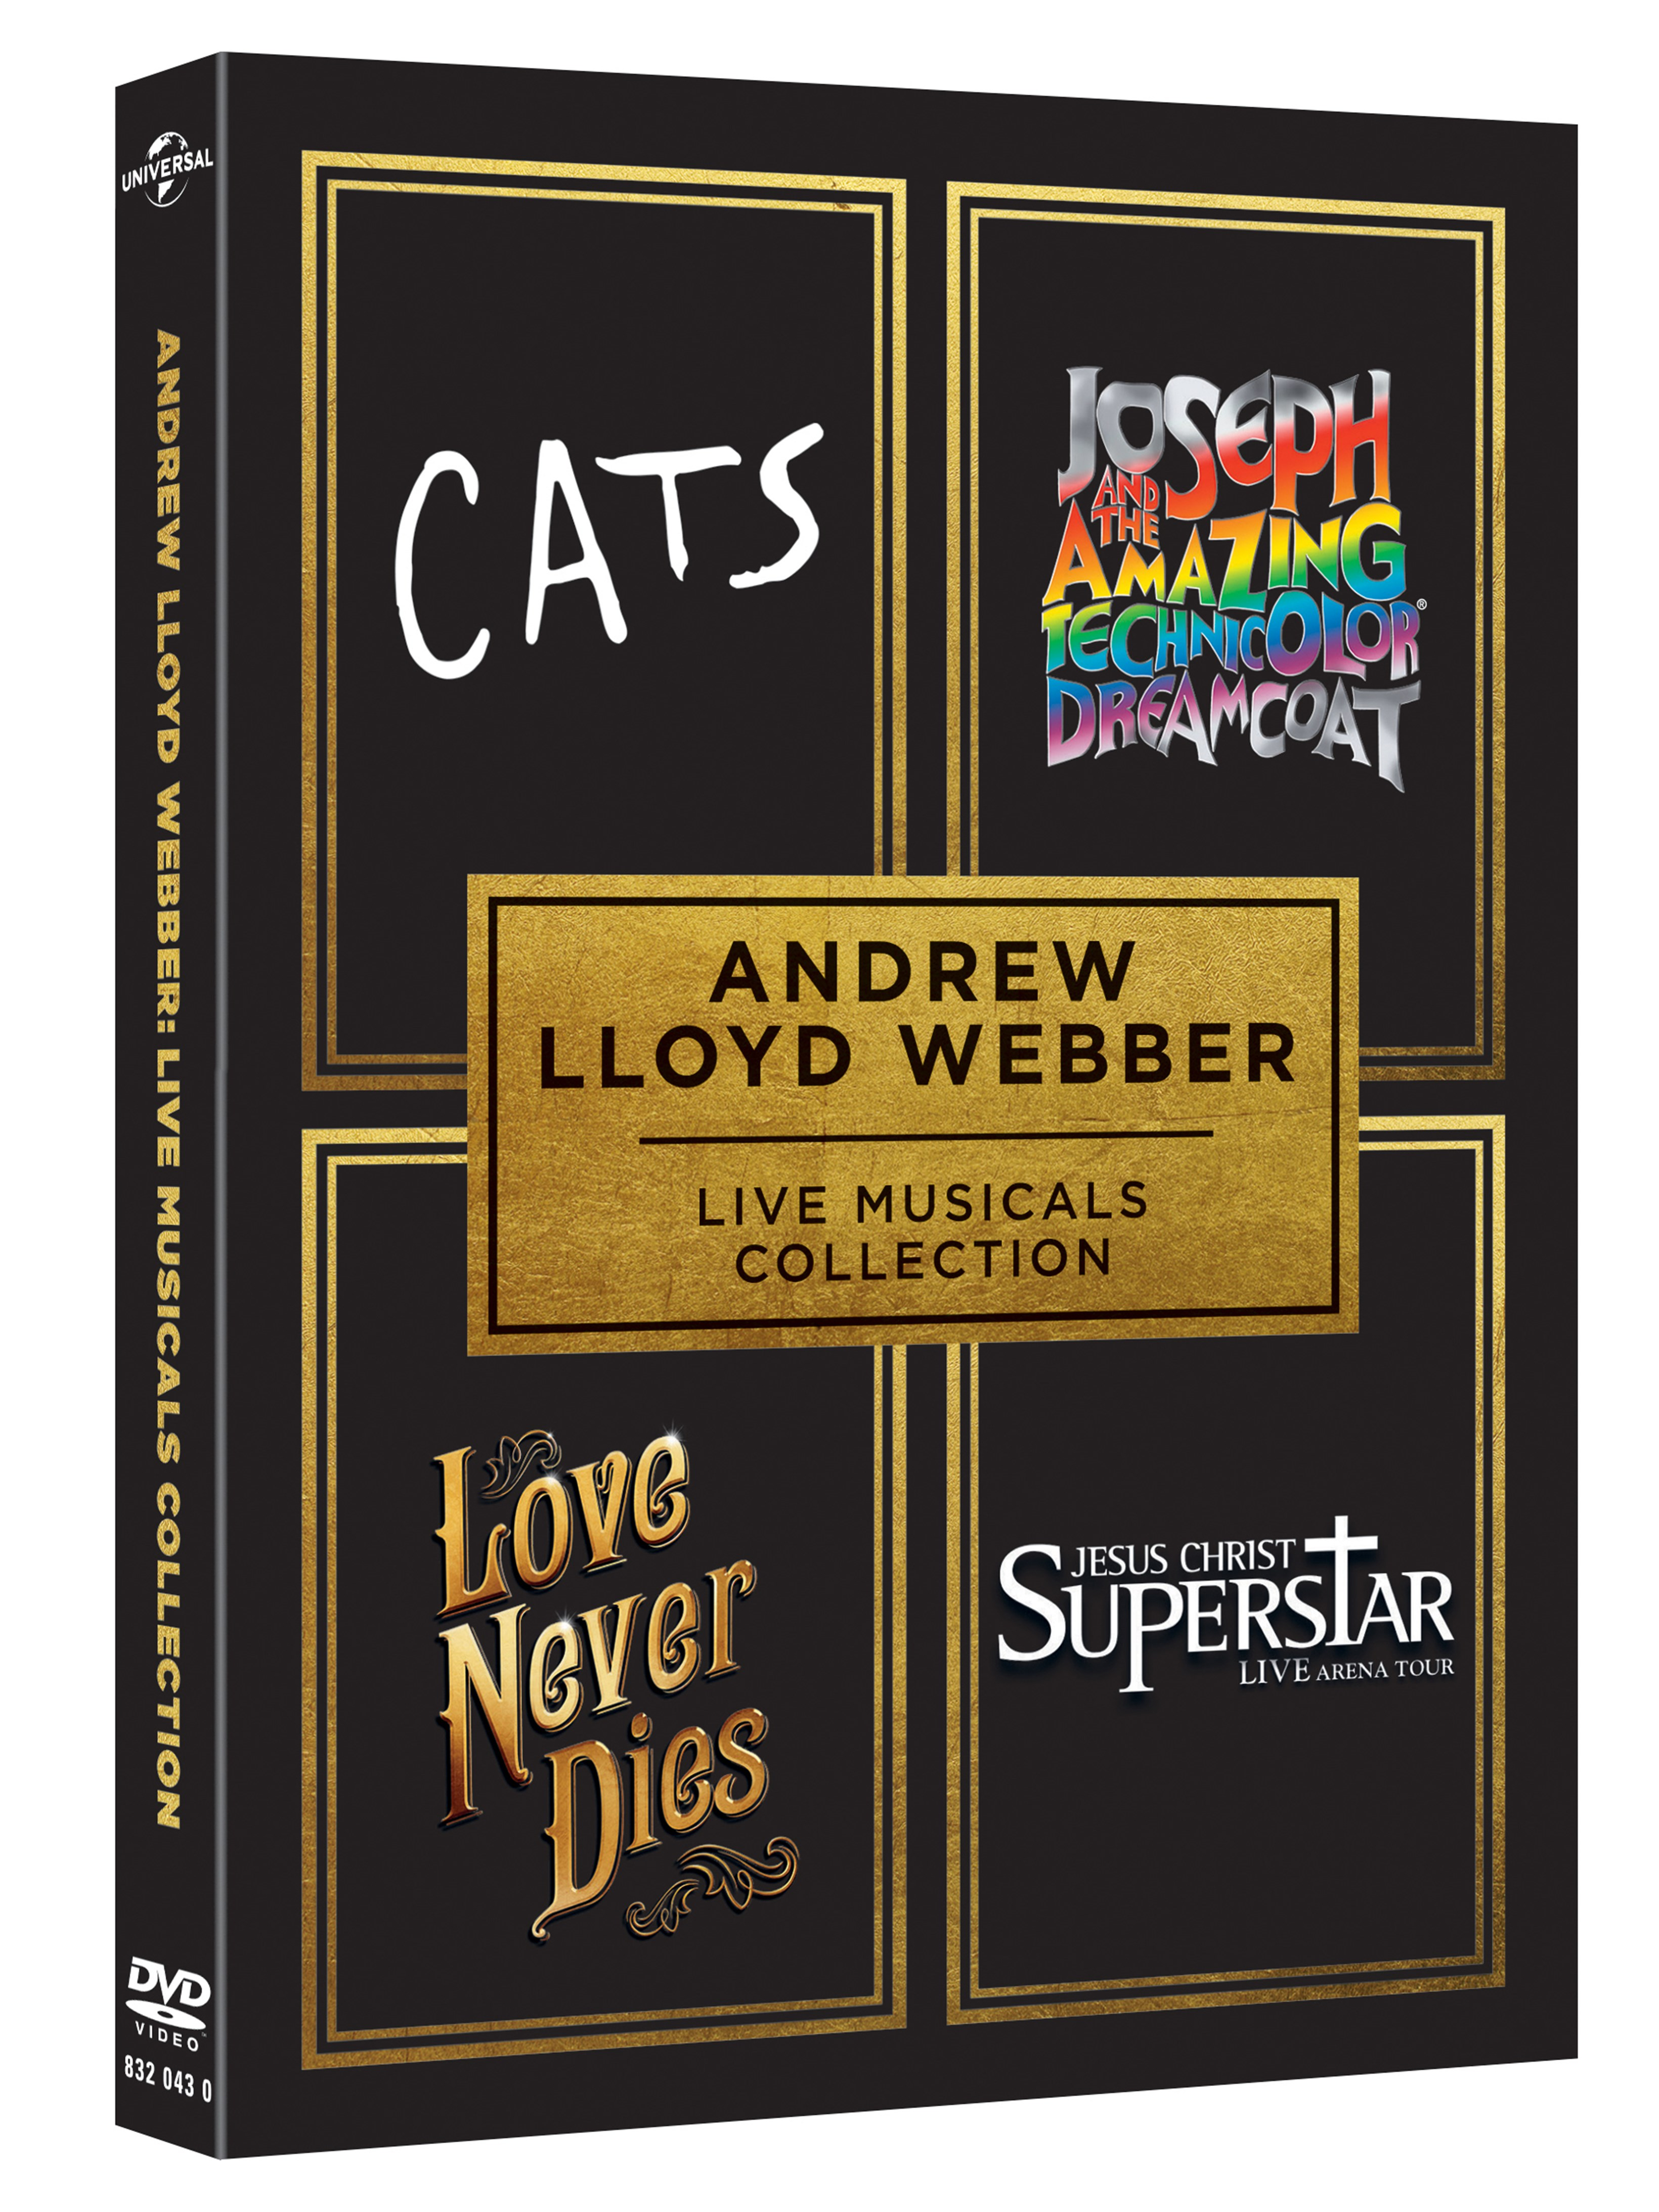 Andrew Lloyd Webber Live Musicals Collection - 2